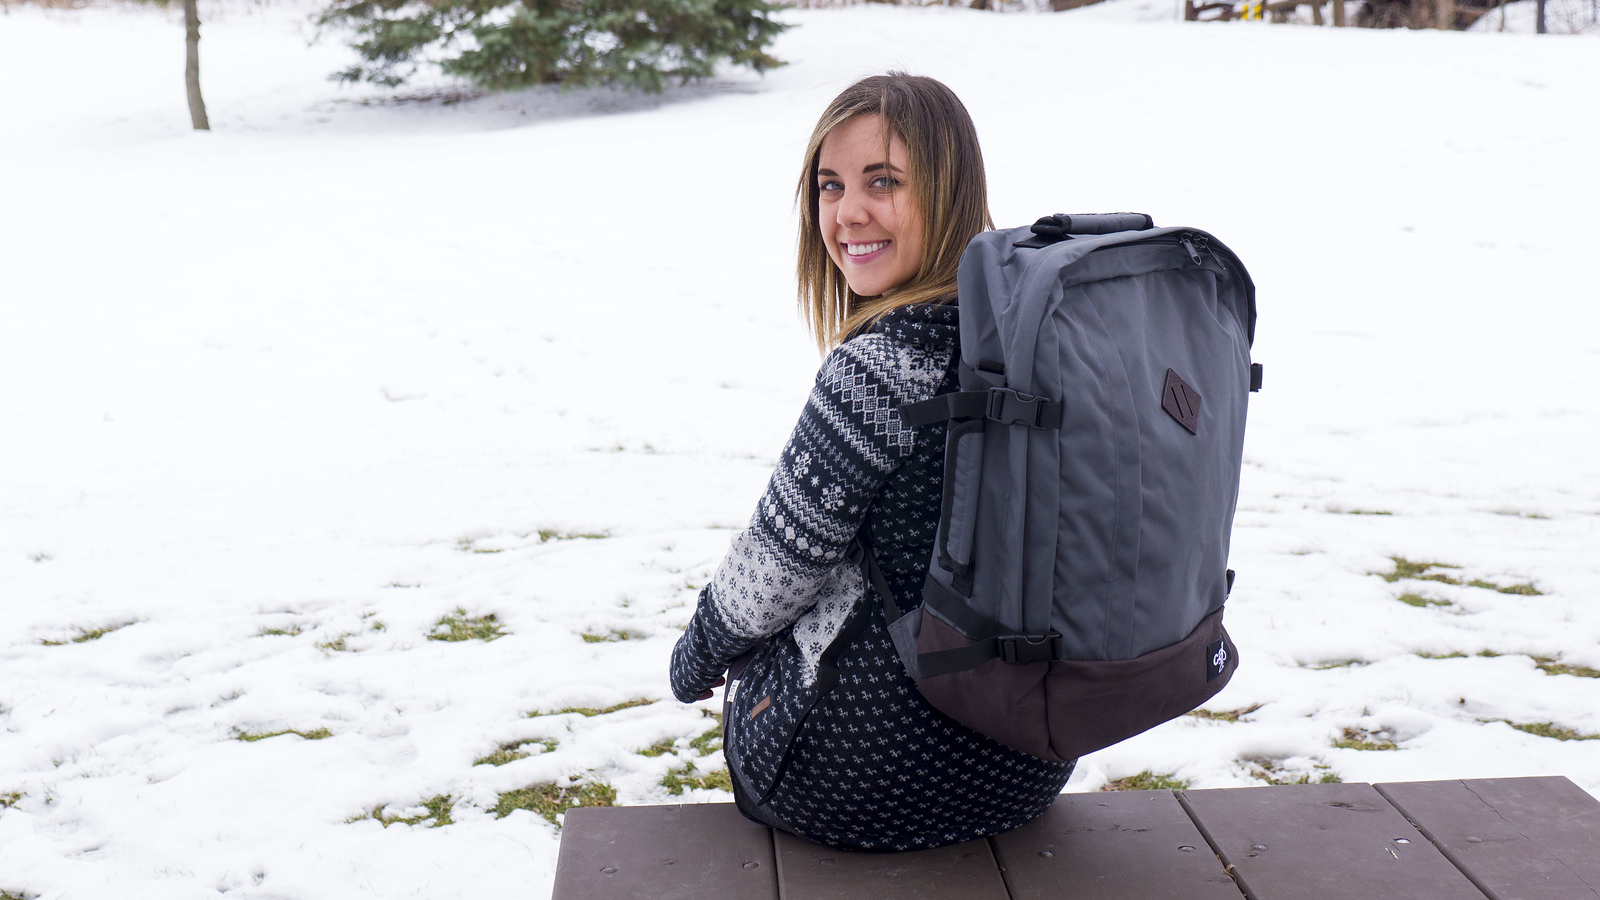 CabinZero Backpack - Our Favorite Carry On Luggage